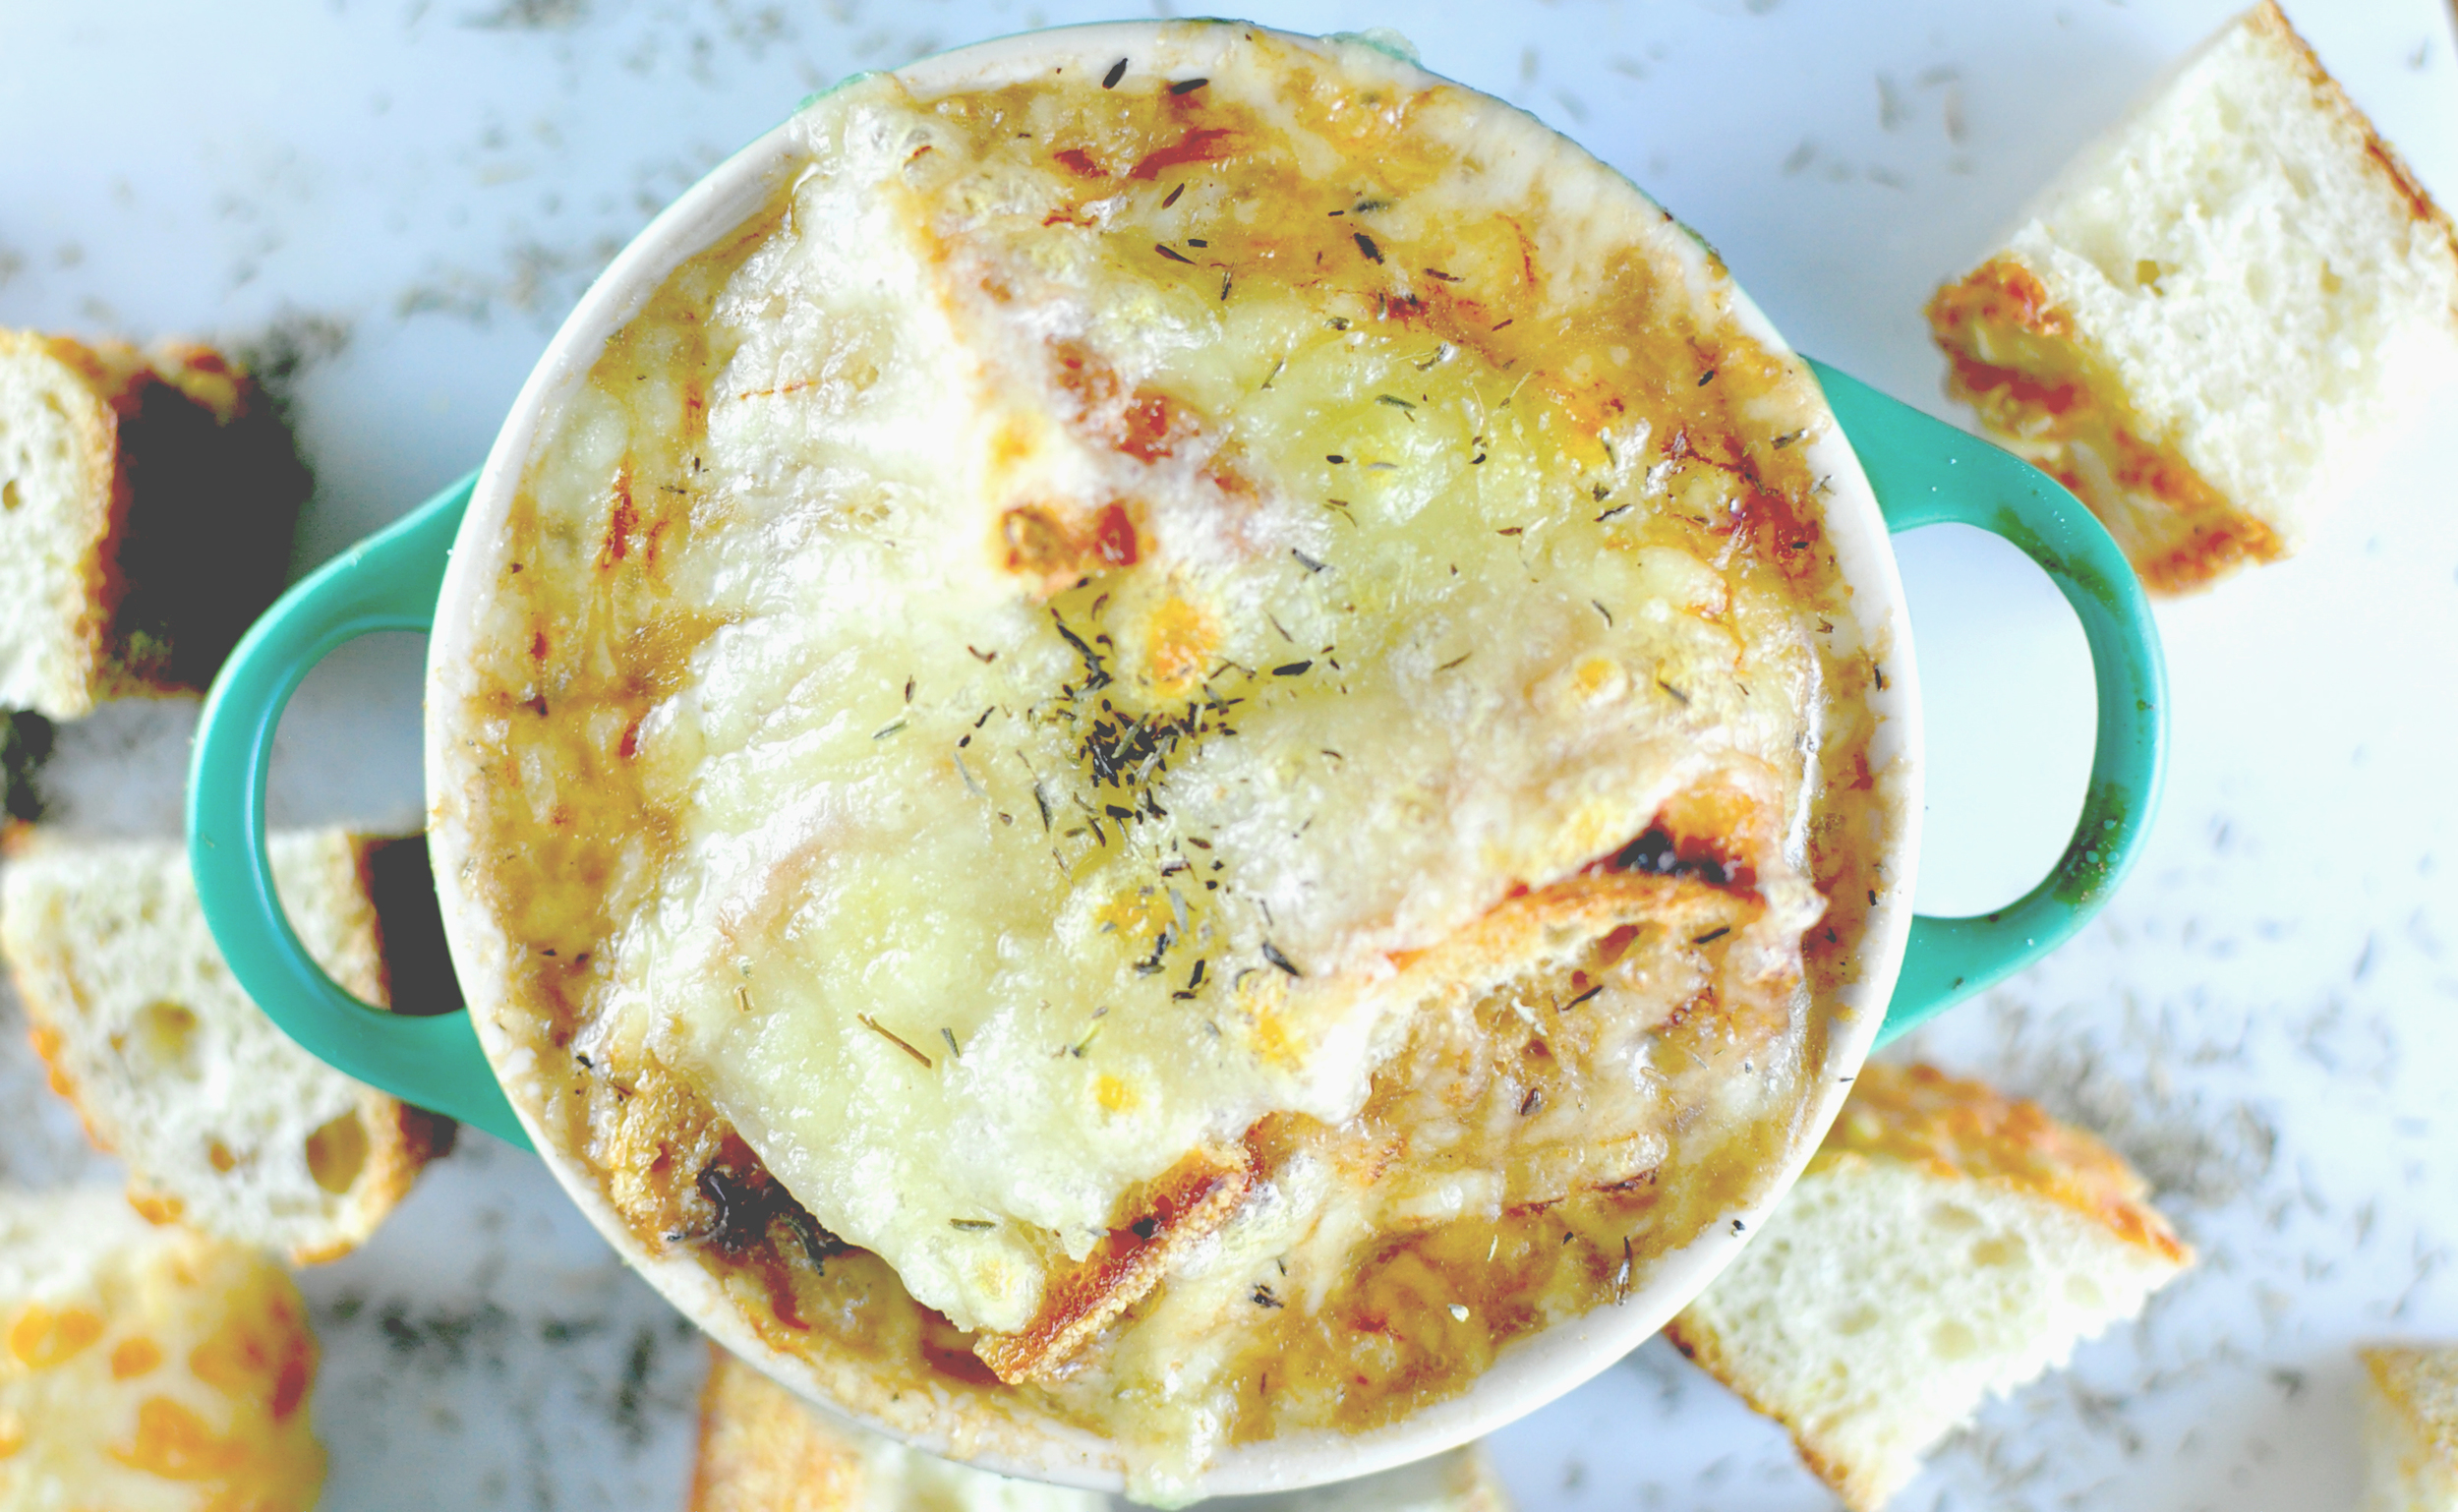 french onion soup with gruyere croutons | kitchen lush